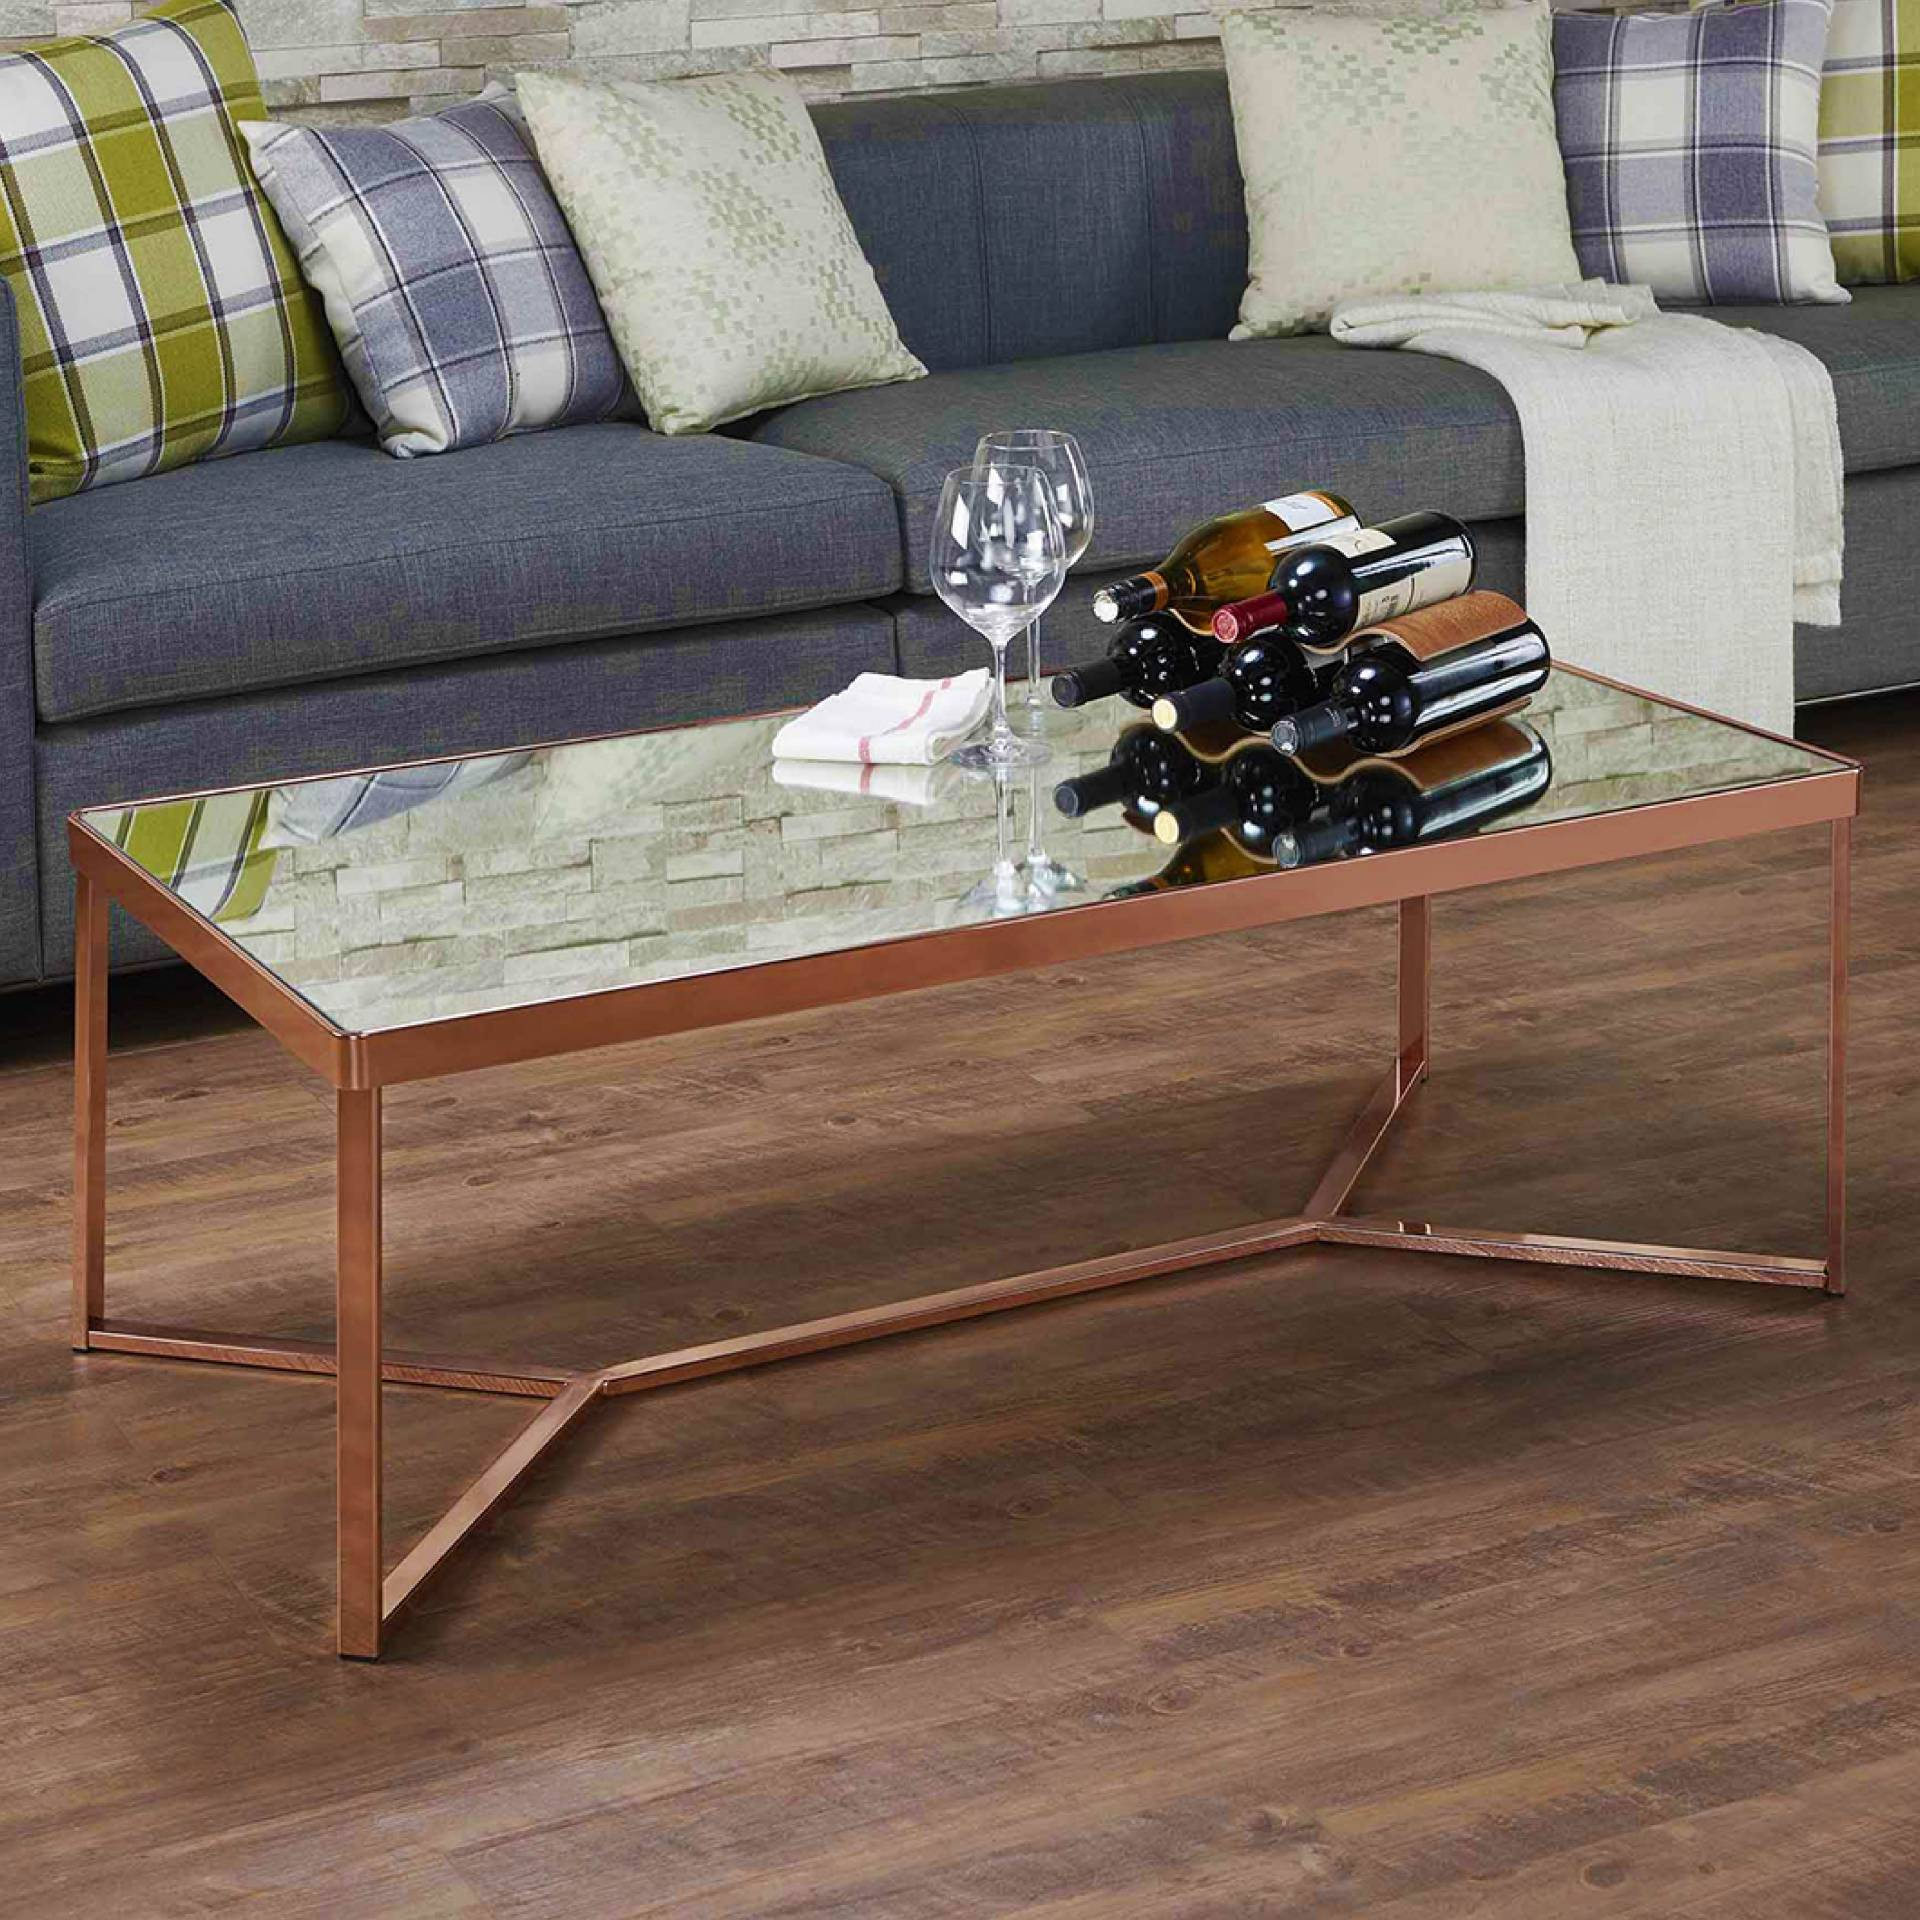 - Mirror Surface Glass Coffee Table Research Development